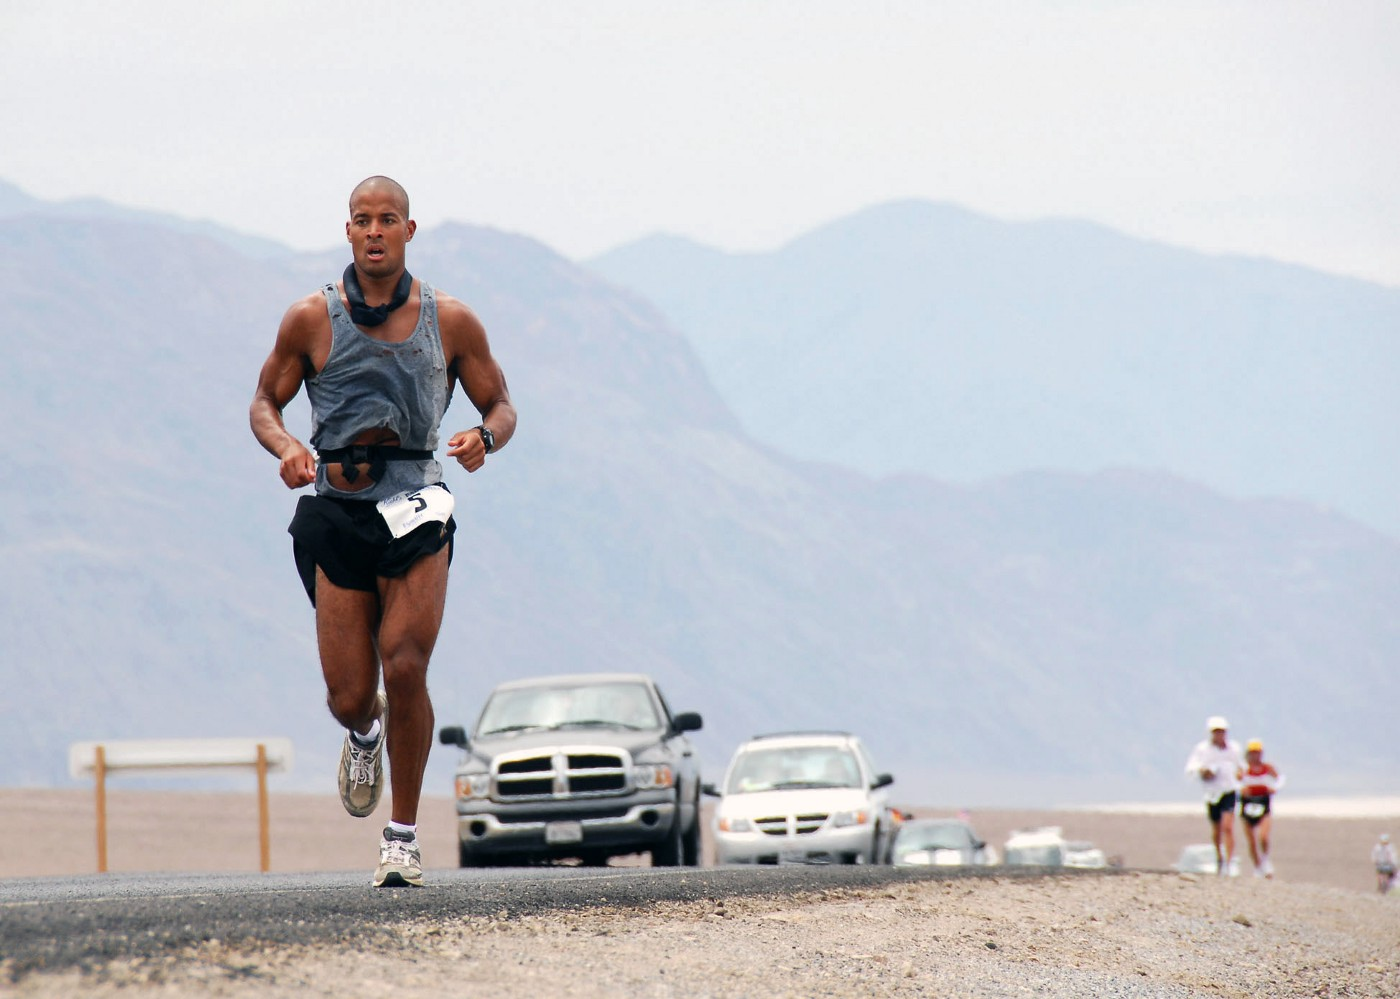 David Goggins running through Death Valley, California. He's running on the paved road, wearing a grey tanktop, black shorts and white sneakers. In the far back there are two runners. The landscape is mountaneous. A row of cars is visibible.